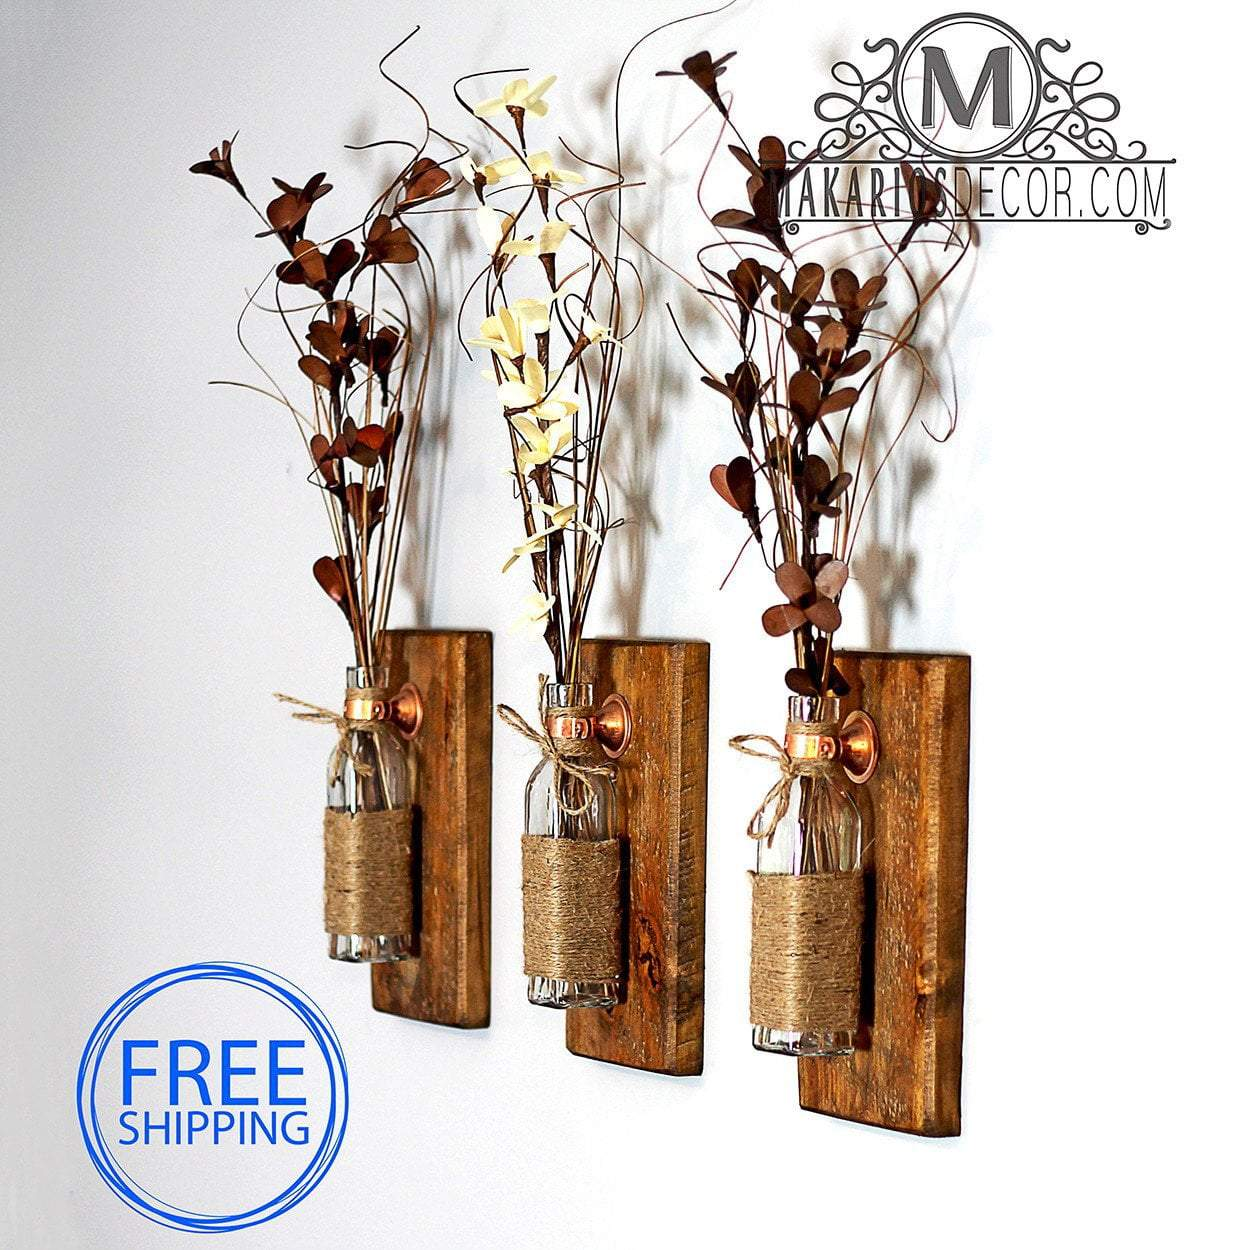 Shop Makarios Rustic Wall Sconces - Reclaimed Wood Wall ... on Wood Wall Sconces id=48743